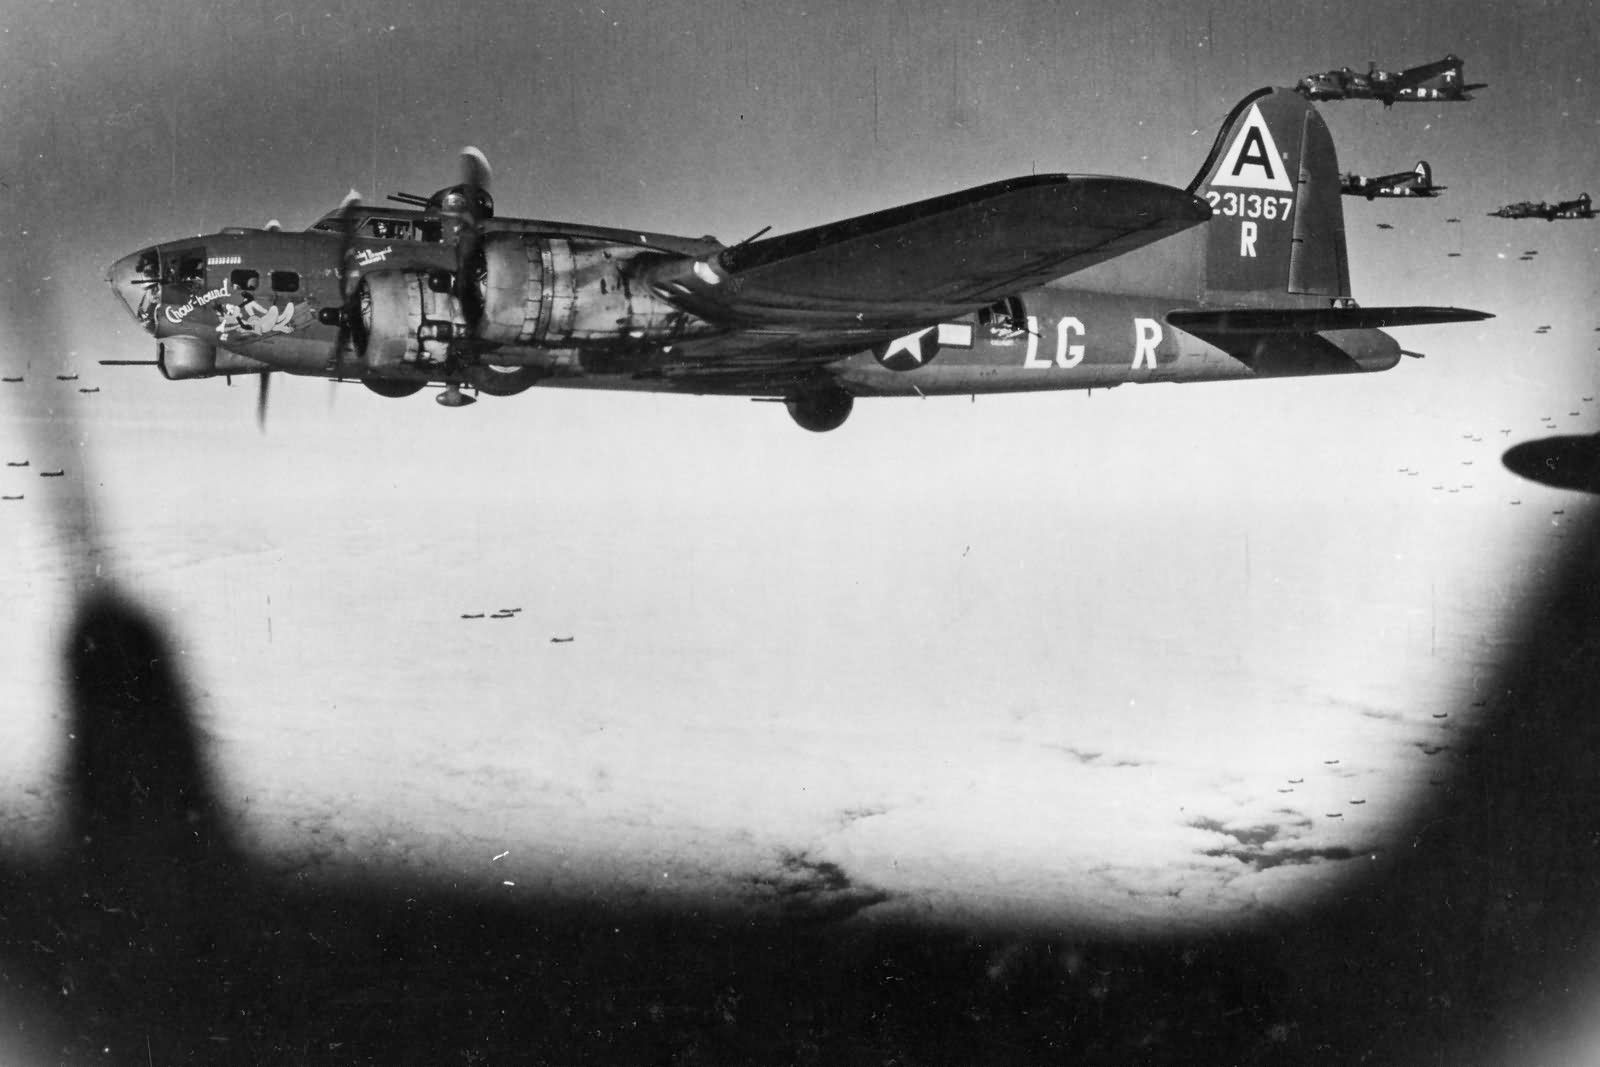 B-17G_42-31367_Chow_Hound_of_91st_Bomb_Group_over_Berlin_on_March_8_1944.jpg